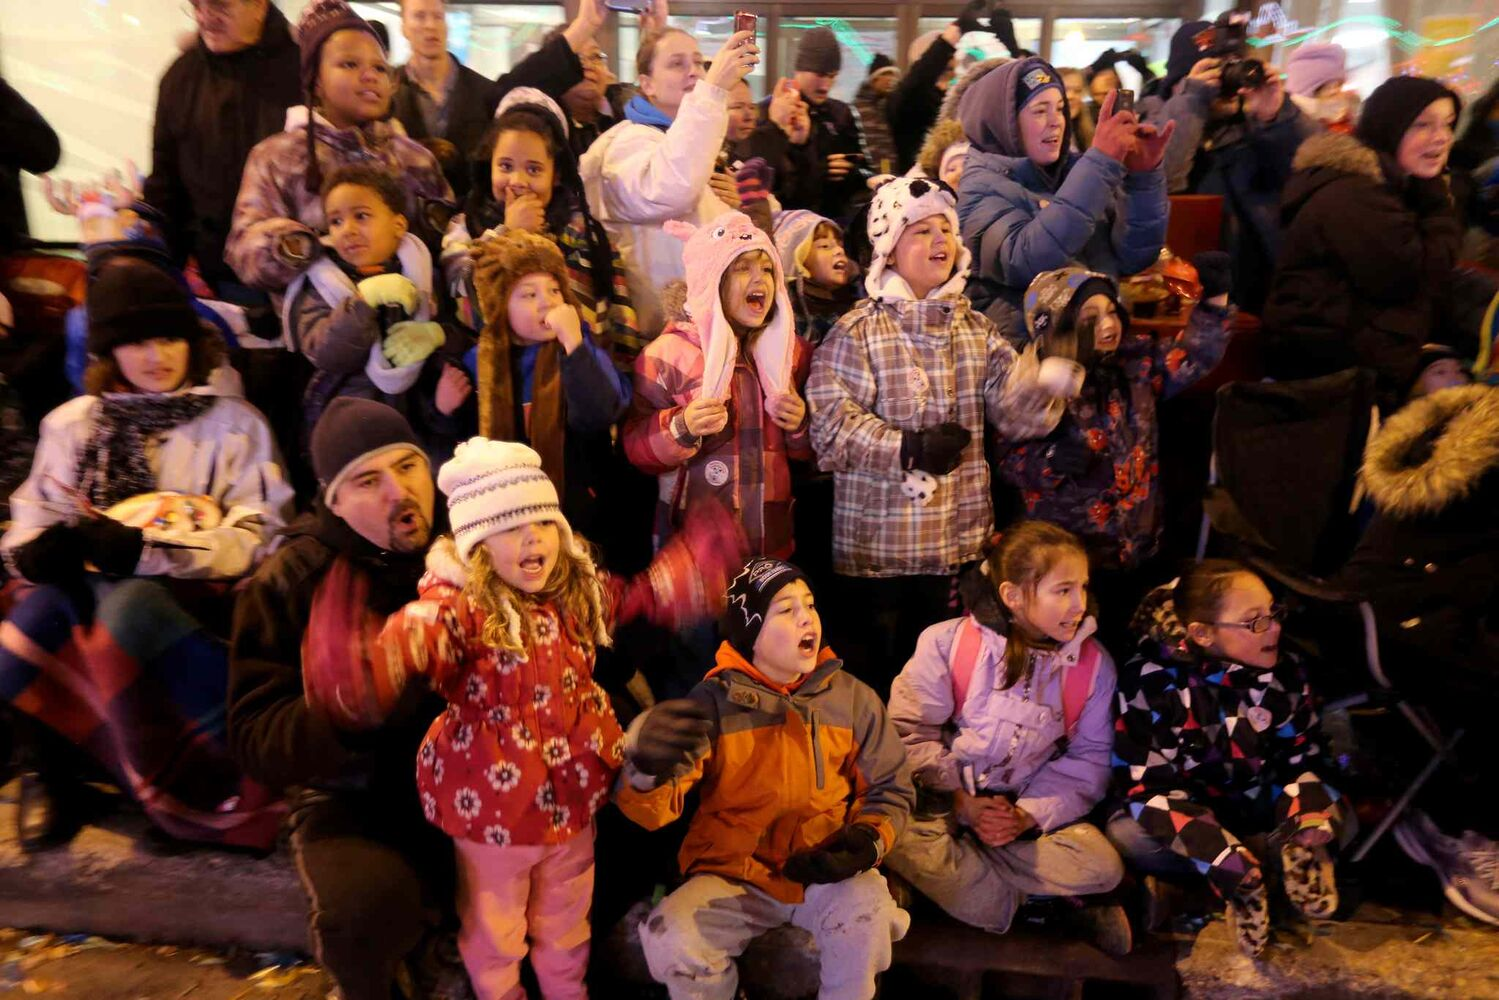 A group of adults and children wave at Santa as he passes by.